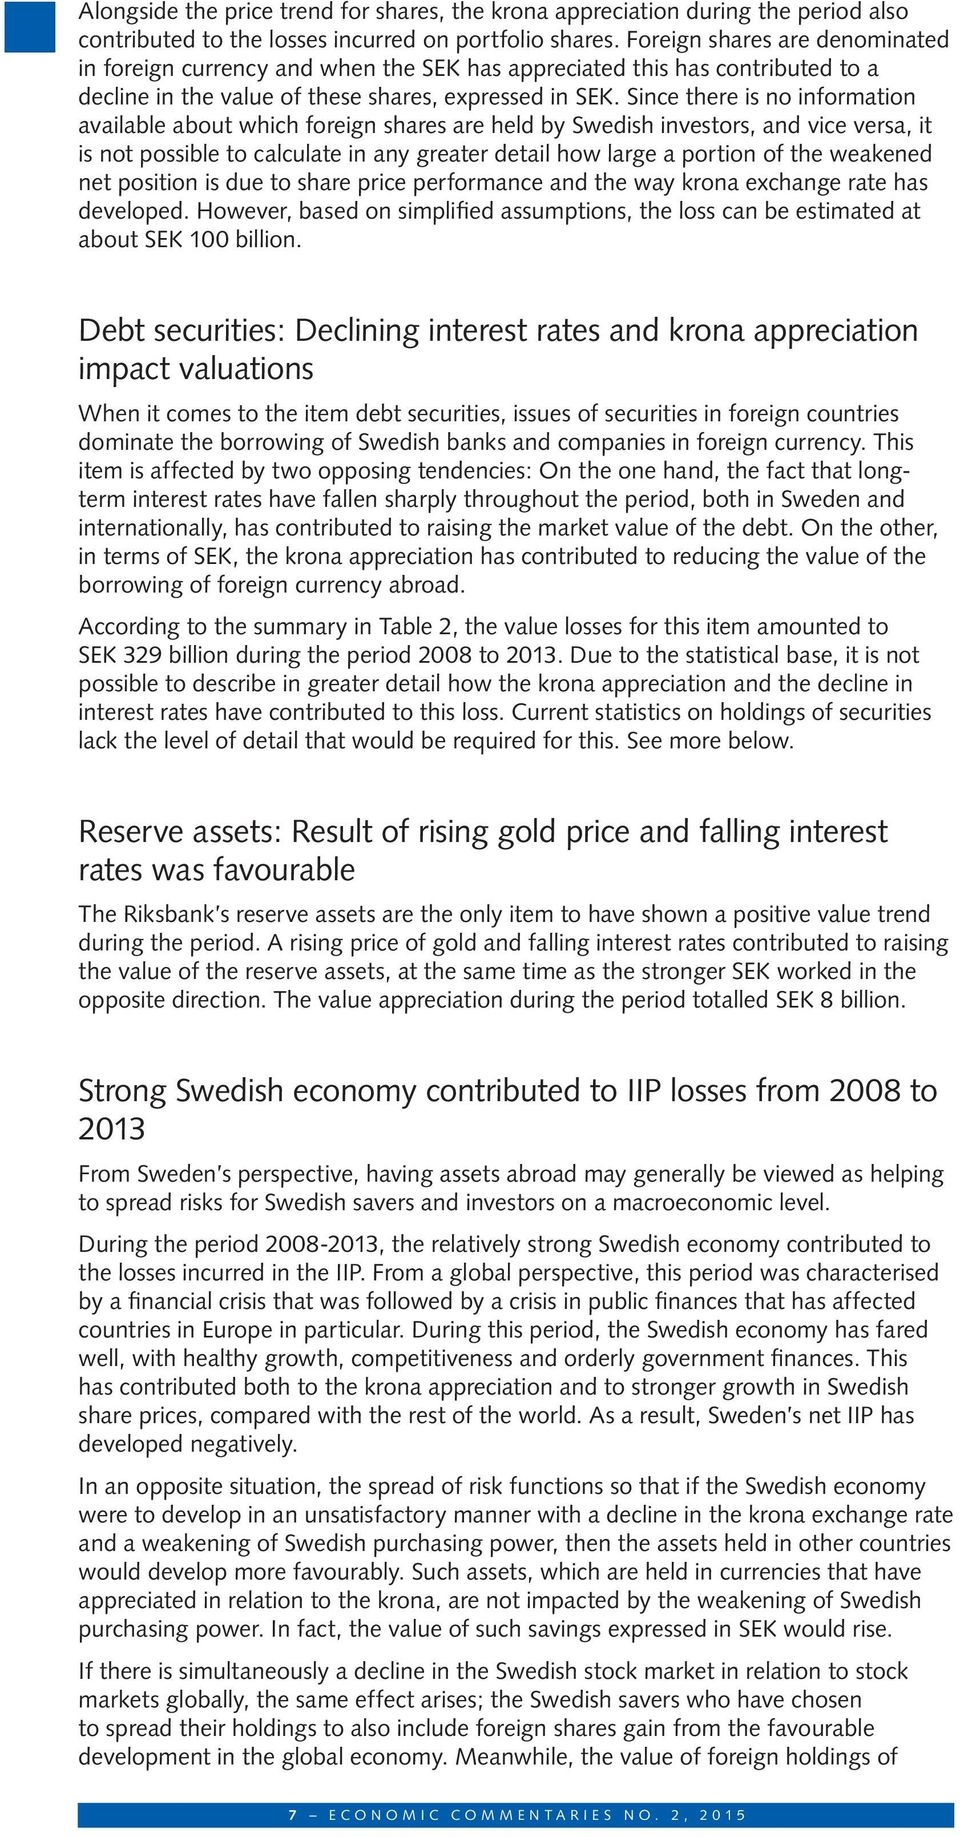 Since there is no information available about which foreign shares are held by Swedish investors, and vice versa, it is not possible to calculate in any greater detail how large a portion of the